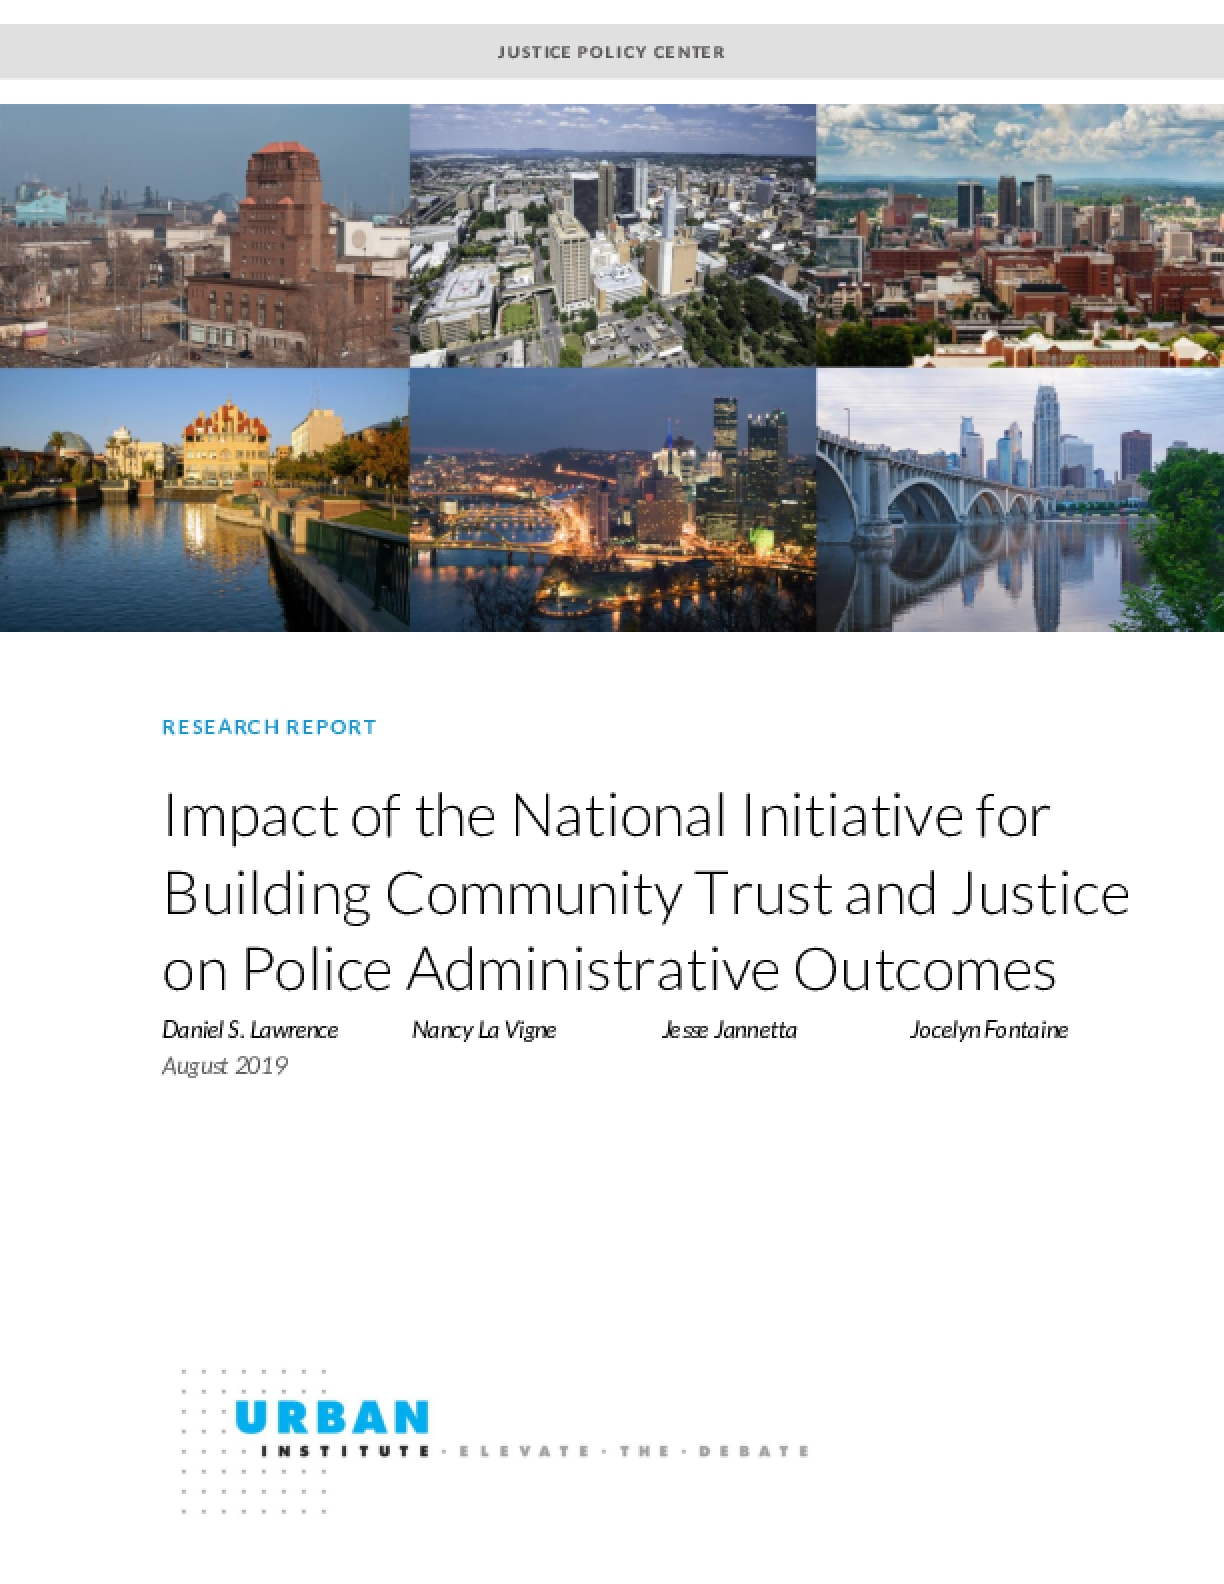 Impact of the National Initiative for Building Community Trust and Justice on Police Administrative Outcomes